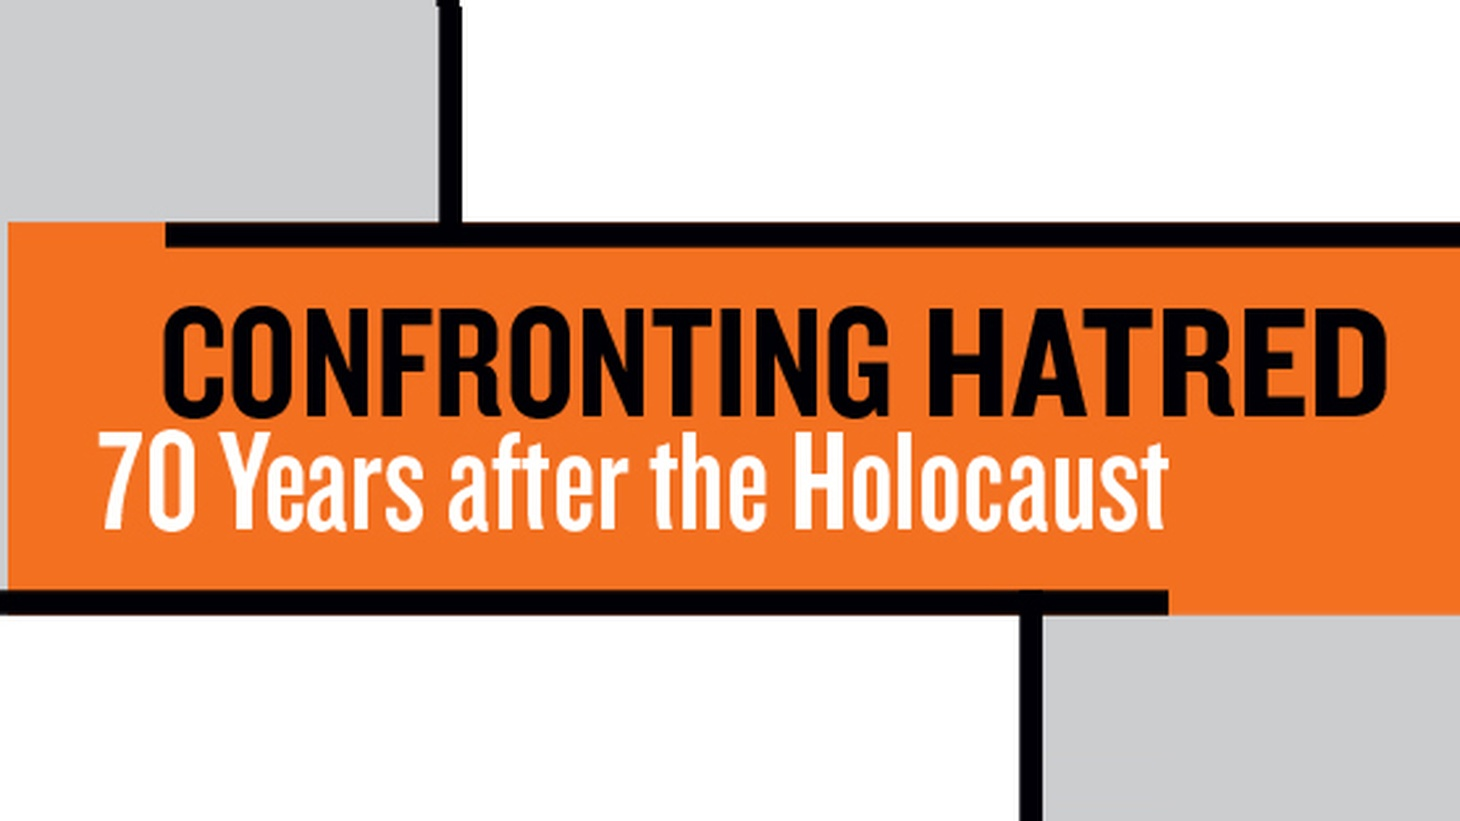 This hour-long radio special, narrated by Morgan Freeman, brings together a broad range of voices to talk about racism, antisemitism, and the ways in which hatred can grow.